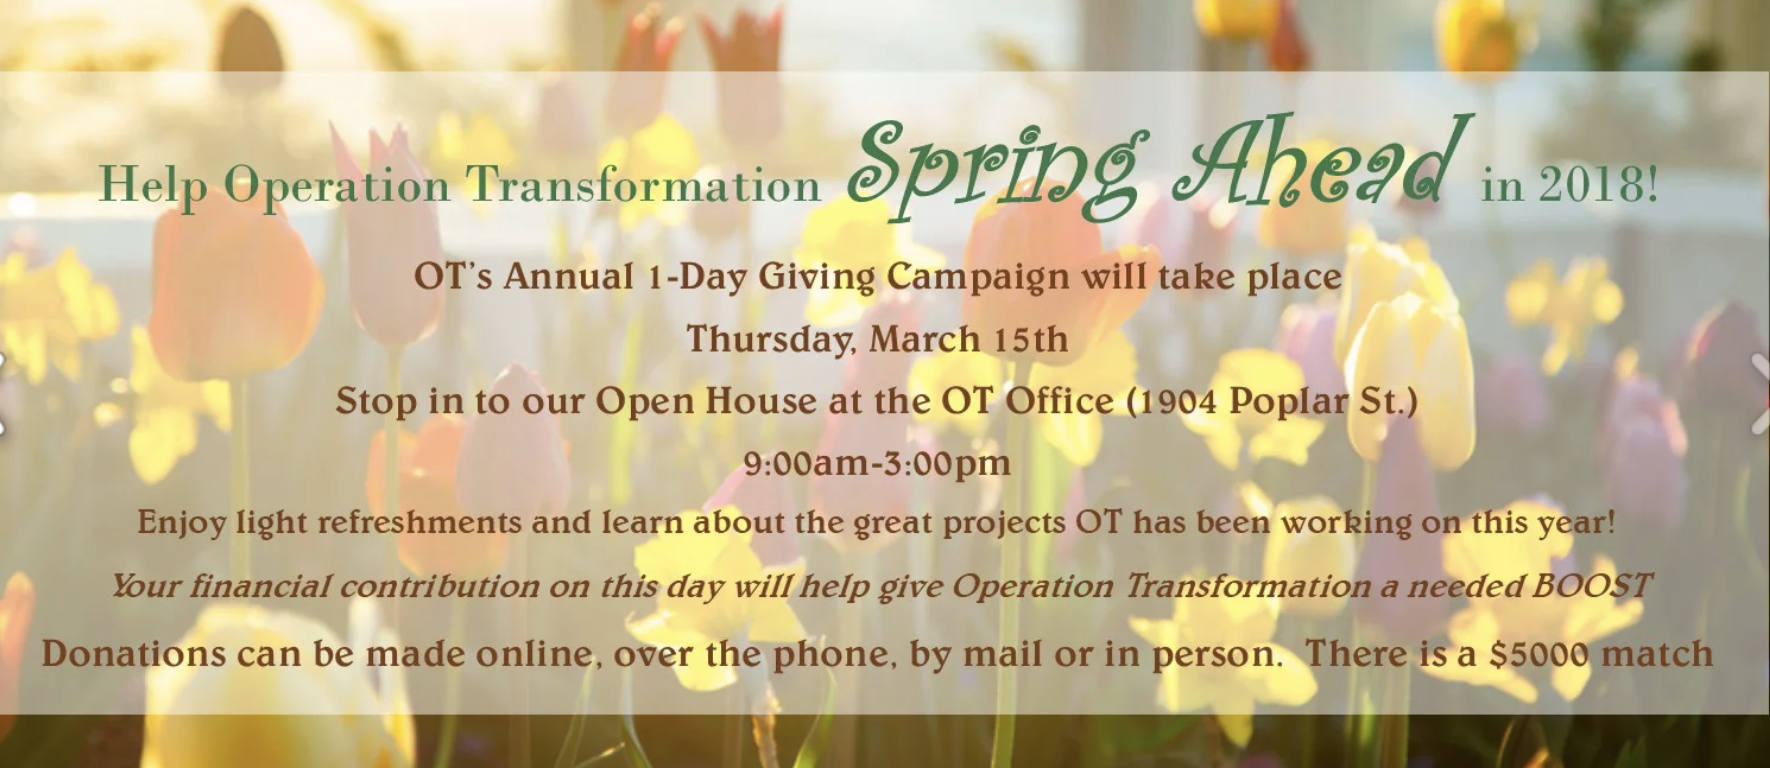 Spring Forward to Operation Transformation